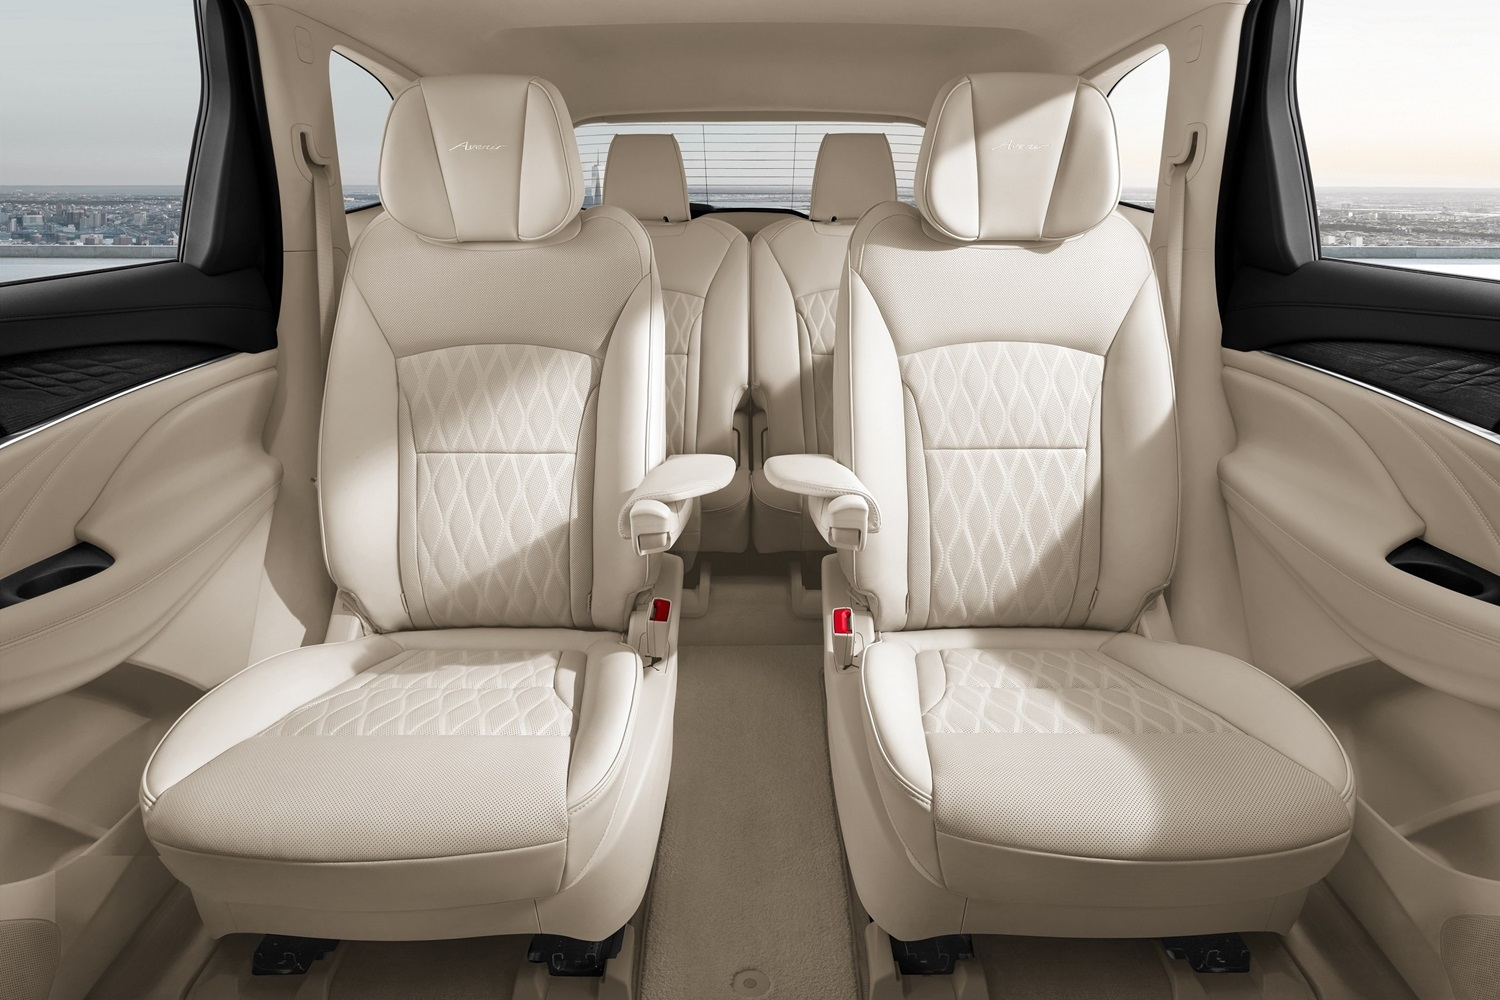 Gm Shows All-New China-Spec Buick Enclave Avenir   Gm Authority 2022 Buick Enclave Specs, Seat Covers, Towing Capacity